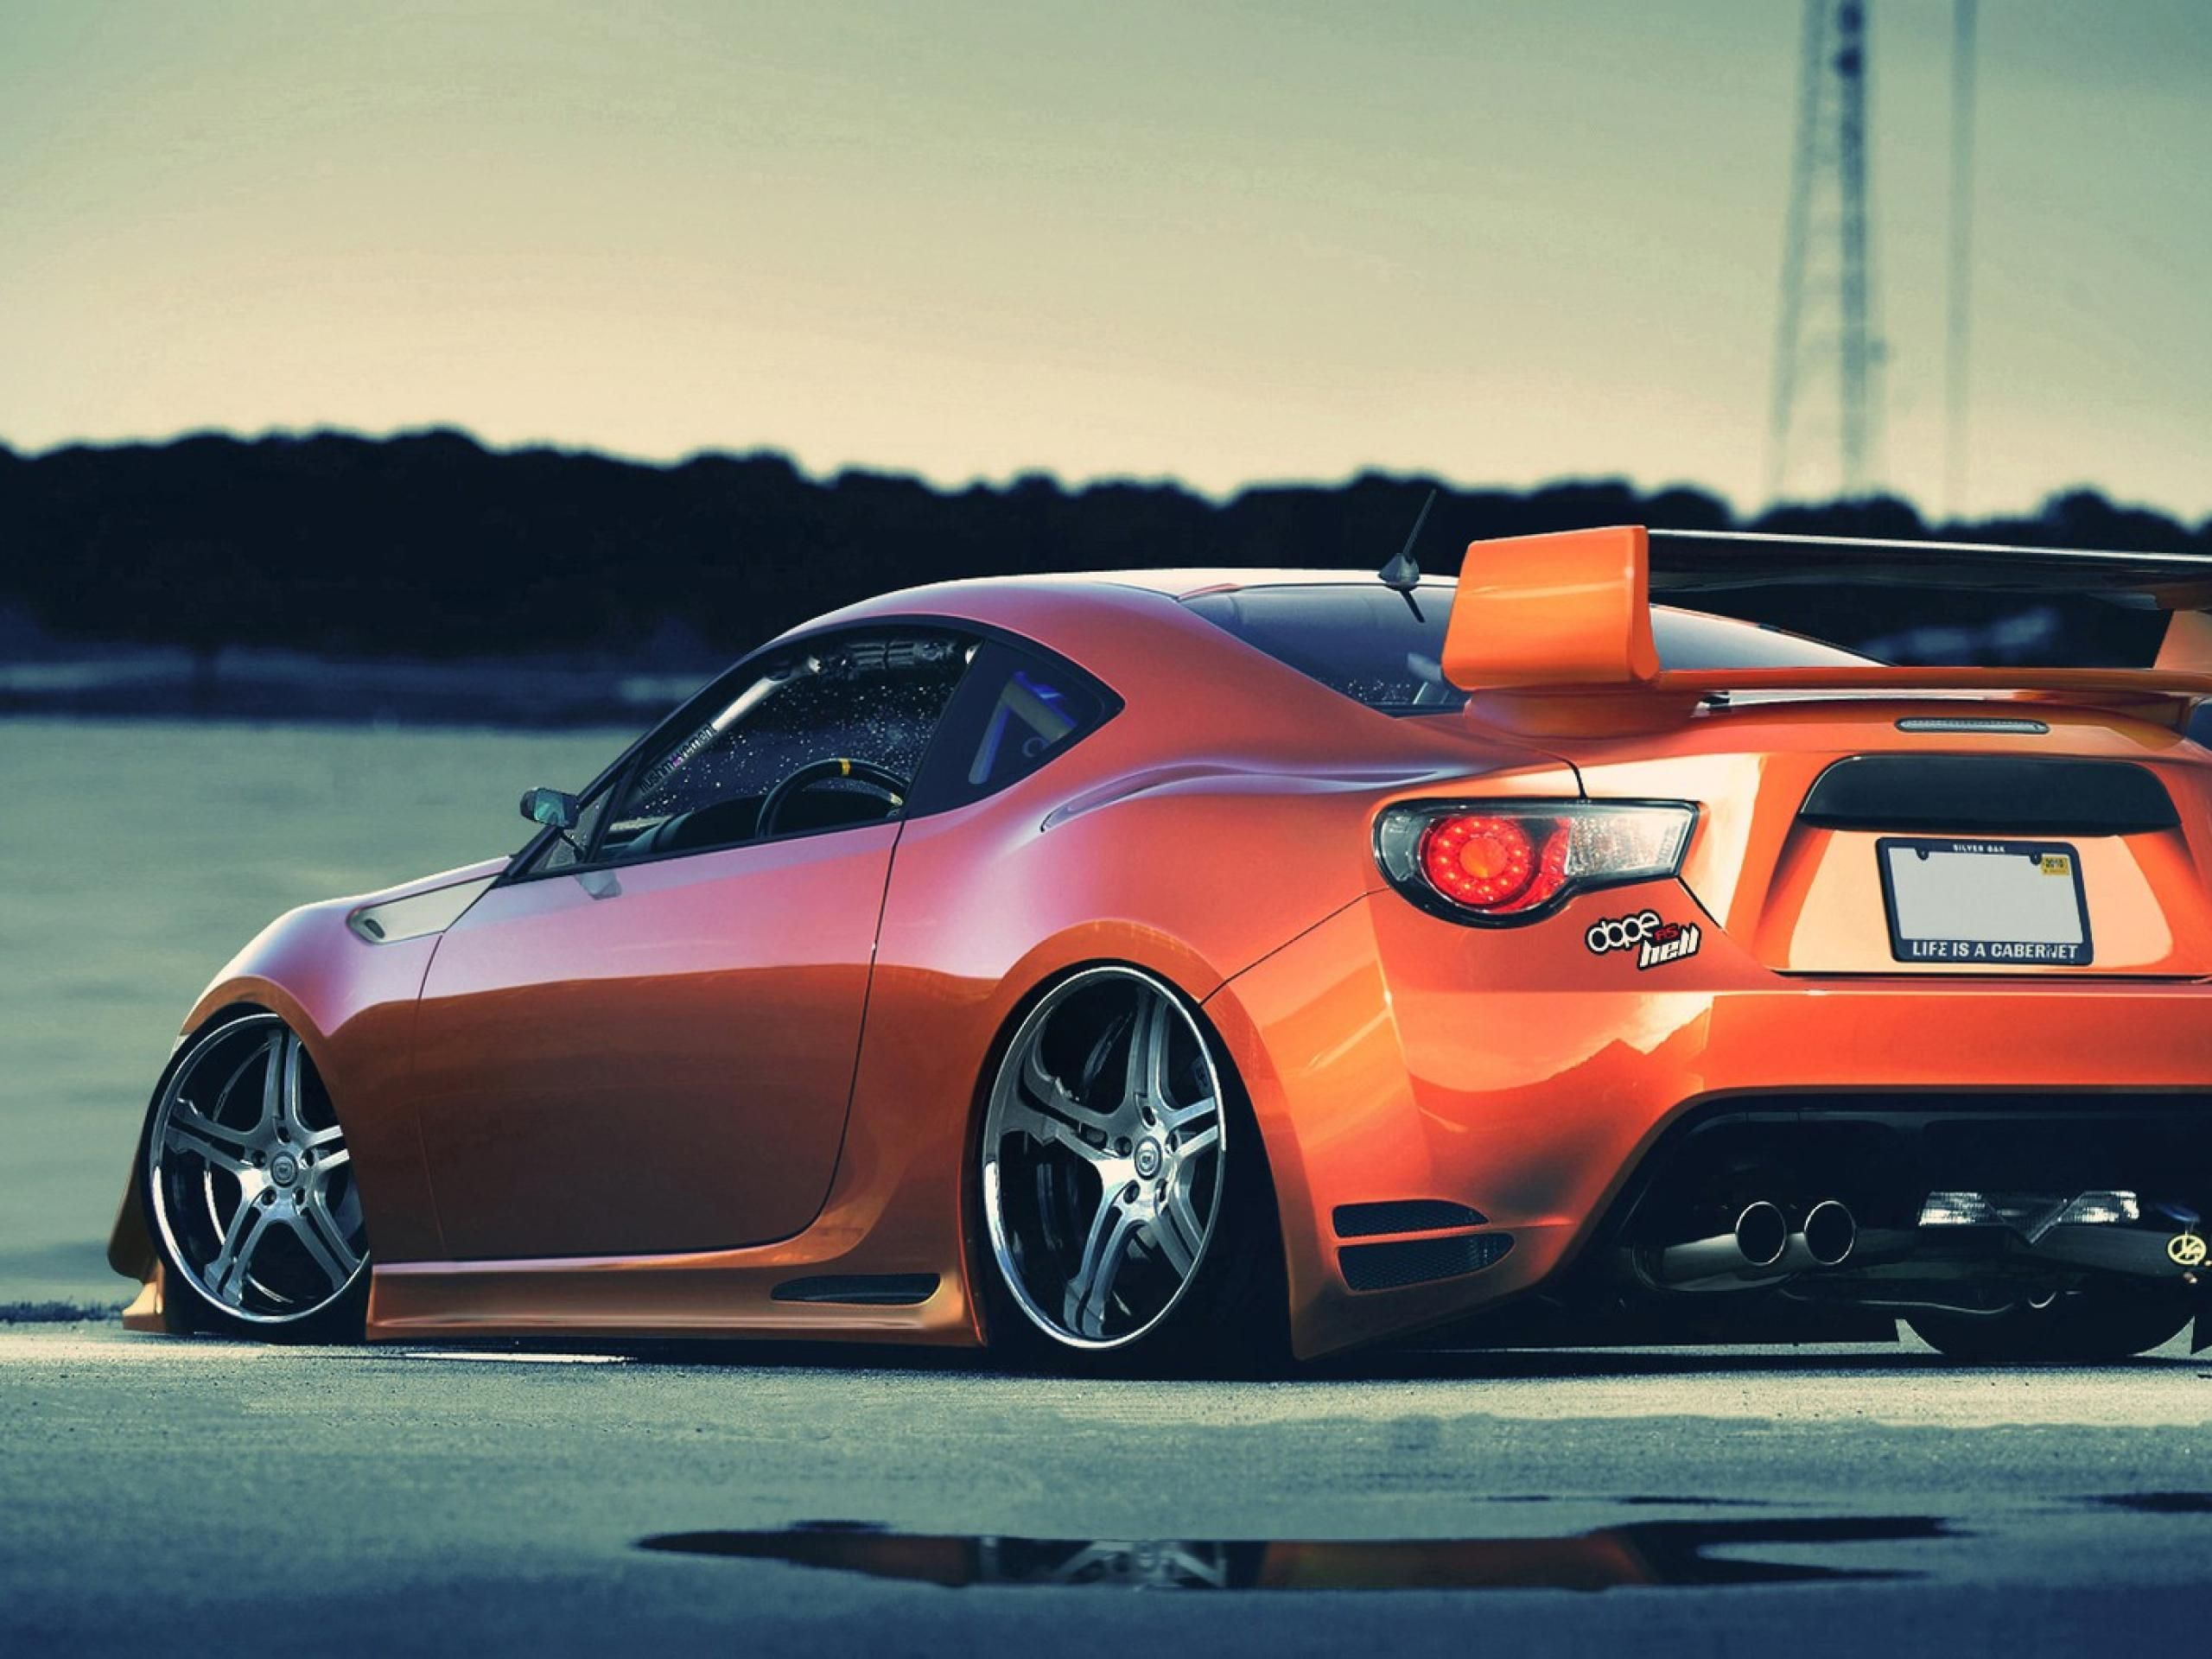 Toyota Gt86 Tuner Cars Car Wallpapers Toyota Gt86